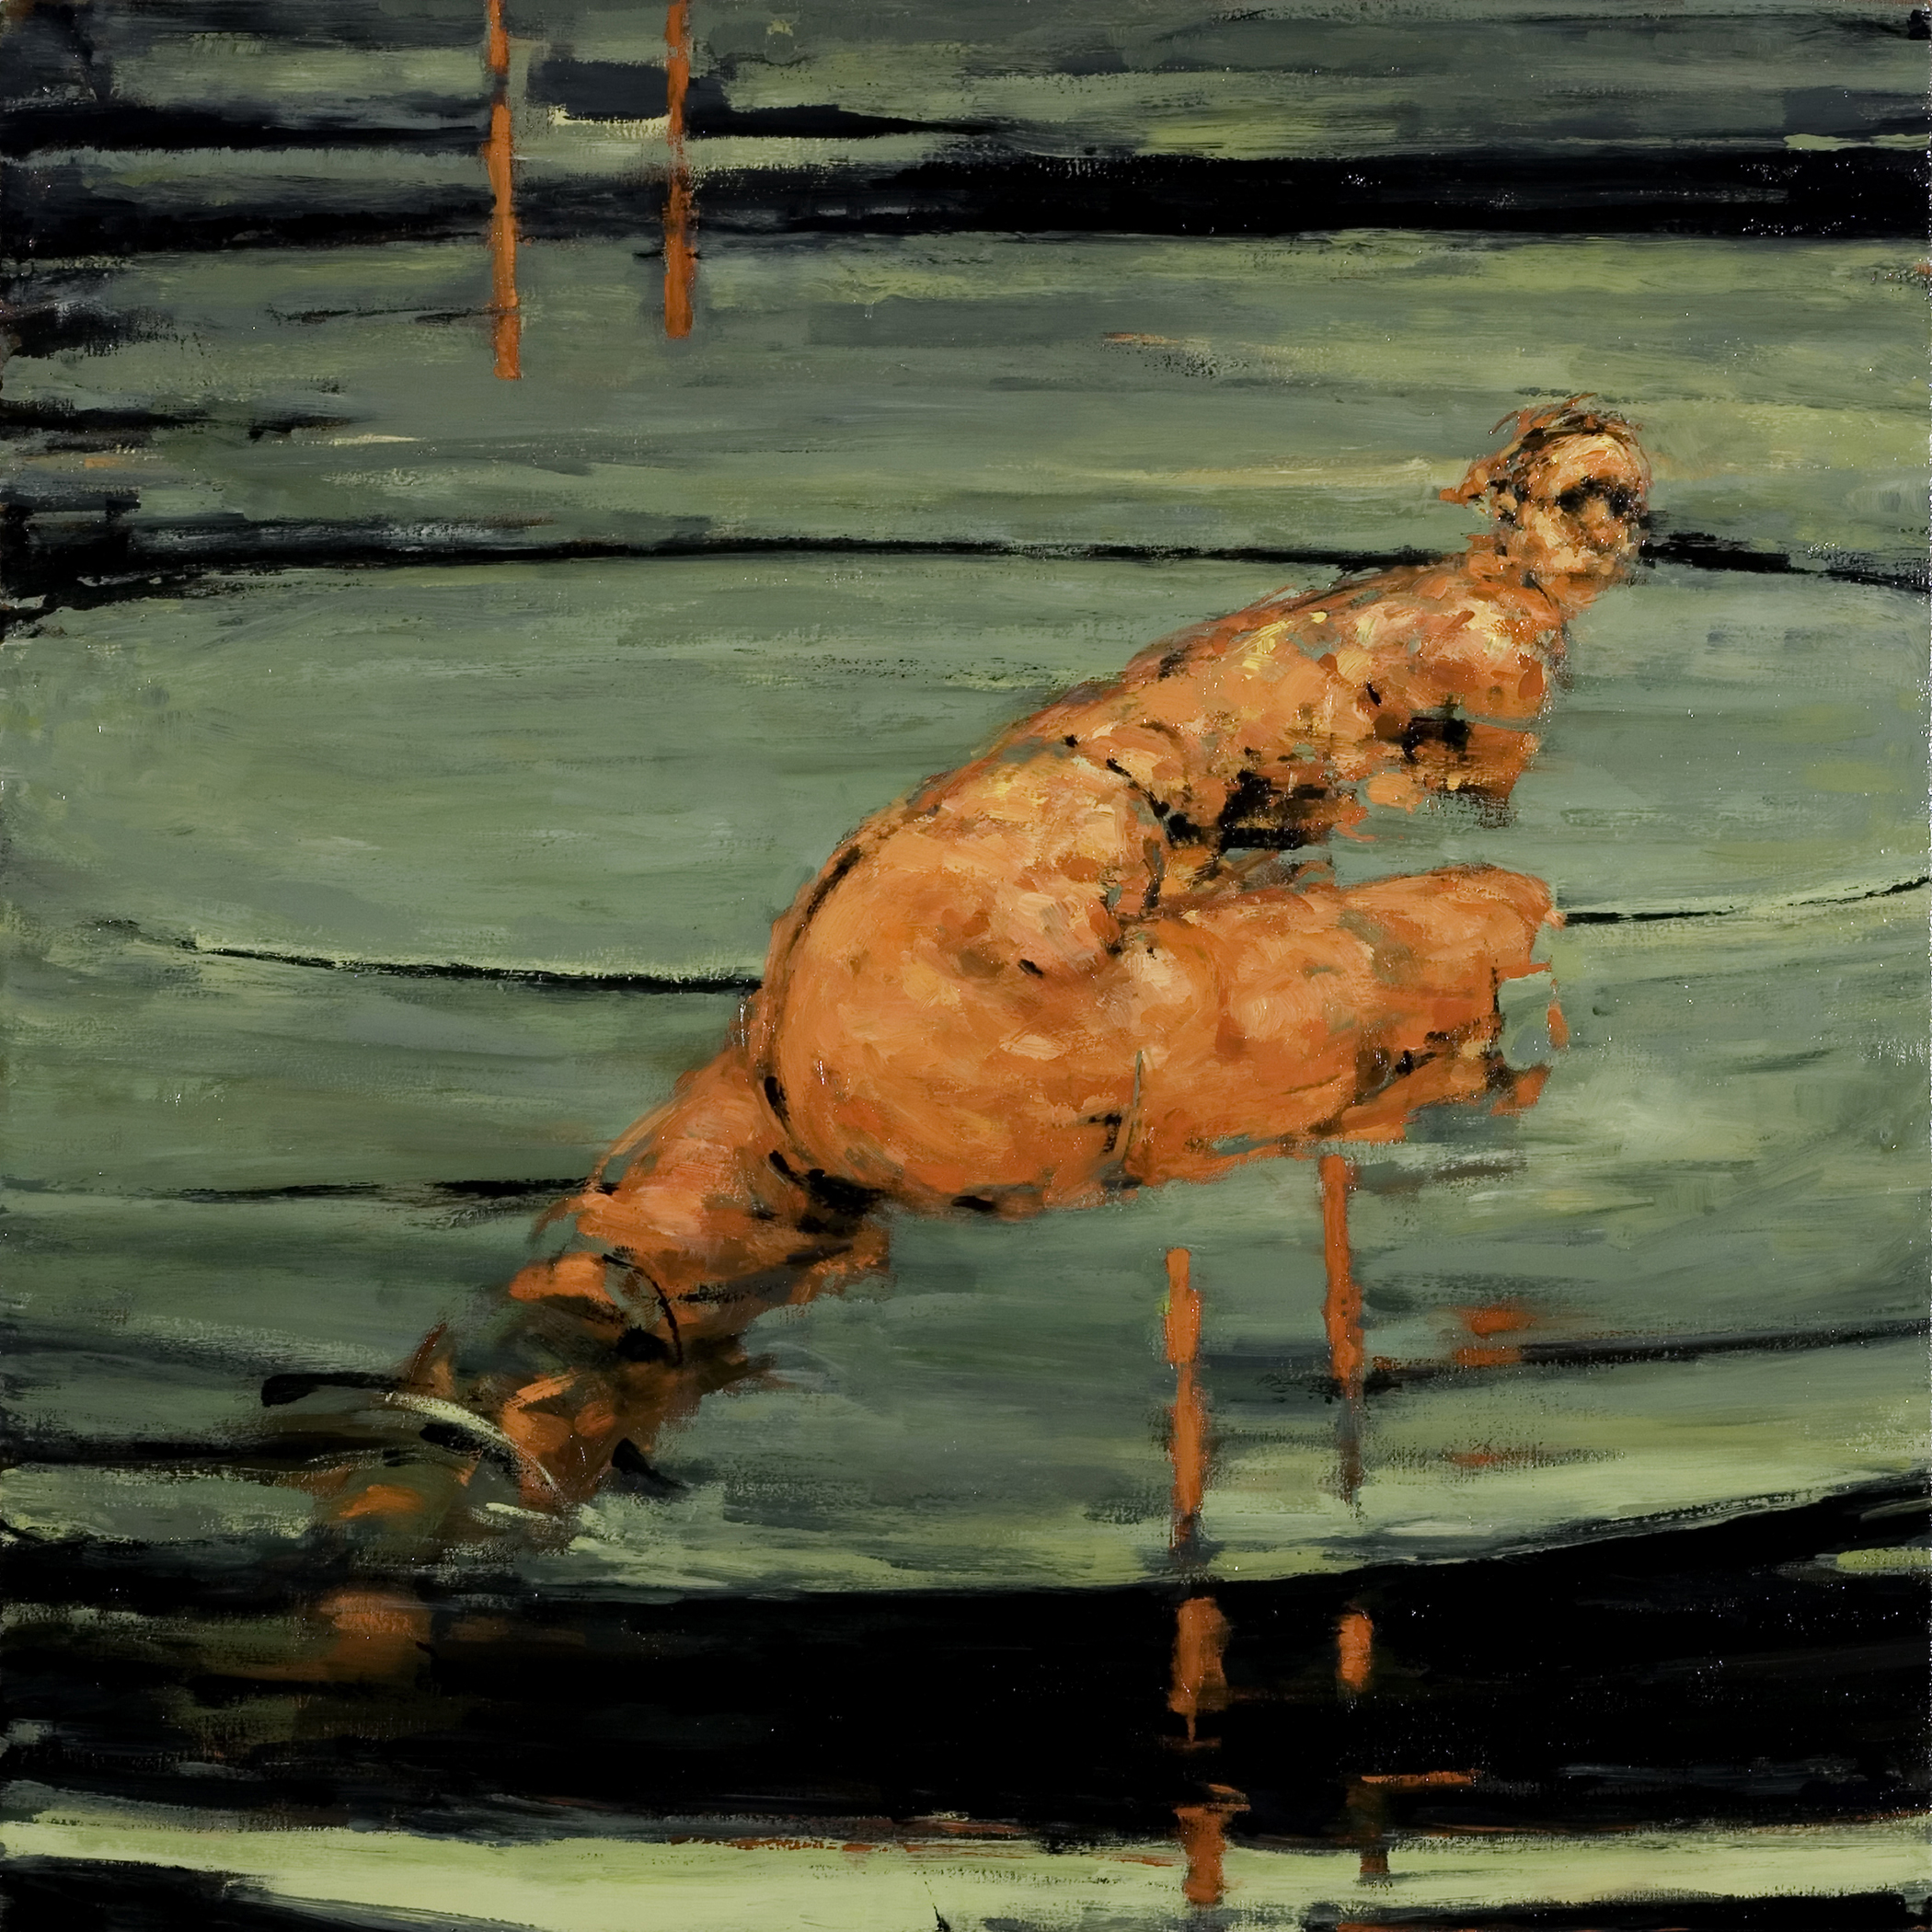 "Carousel (break), oil on canvas, 32"" x 32"" x 2"", 2009 (SVA residency)"